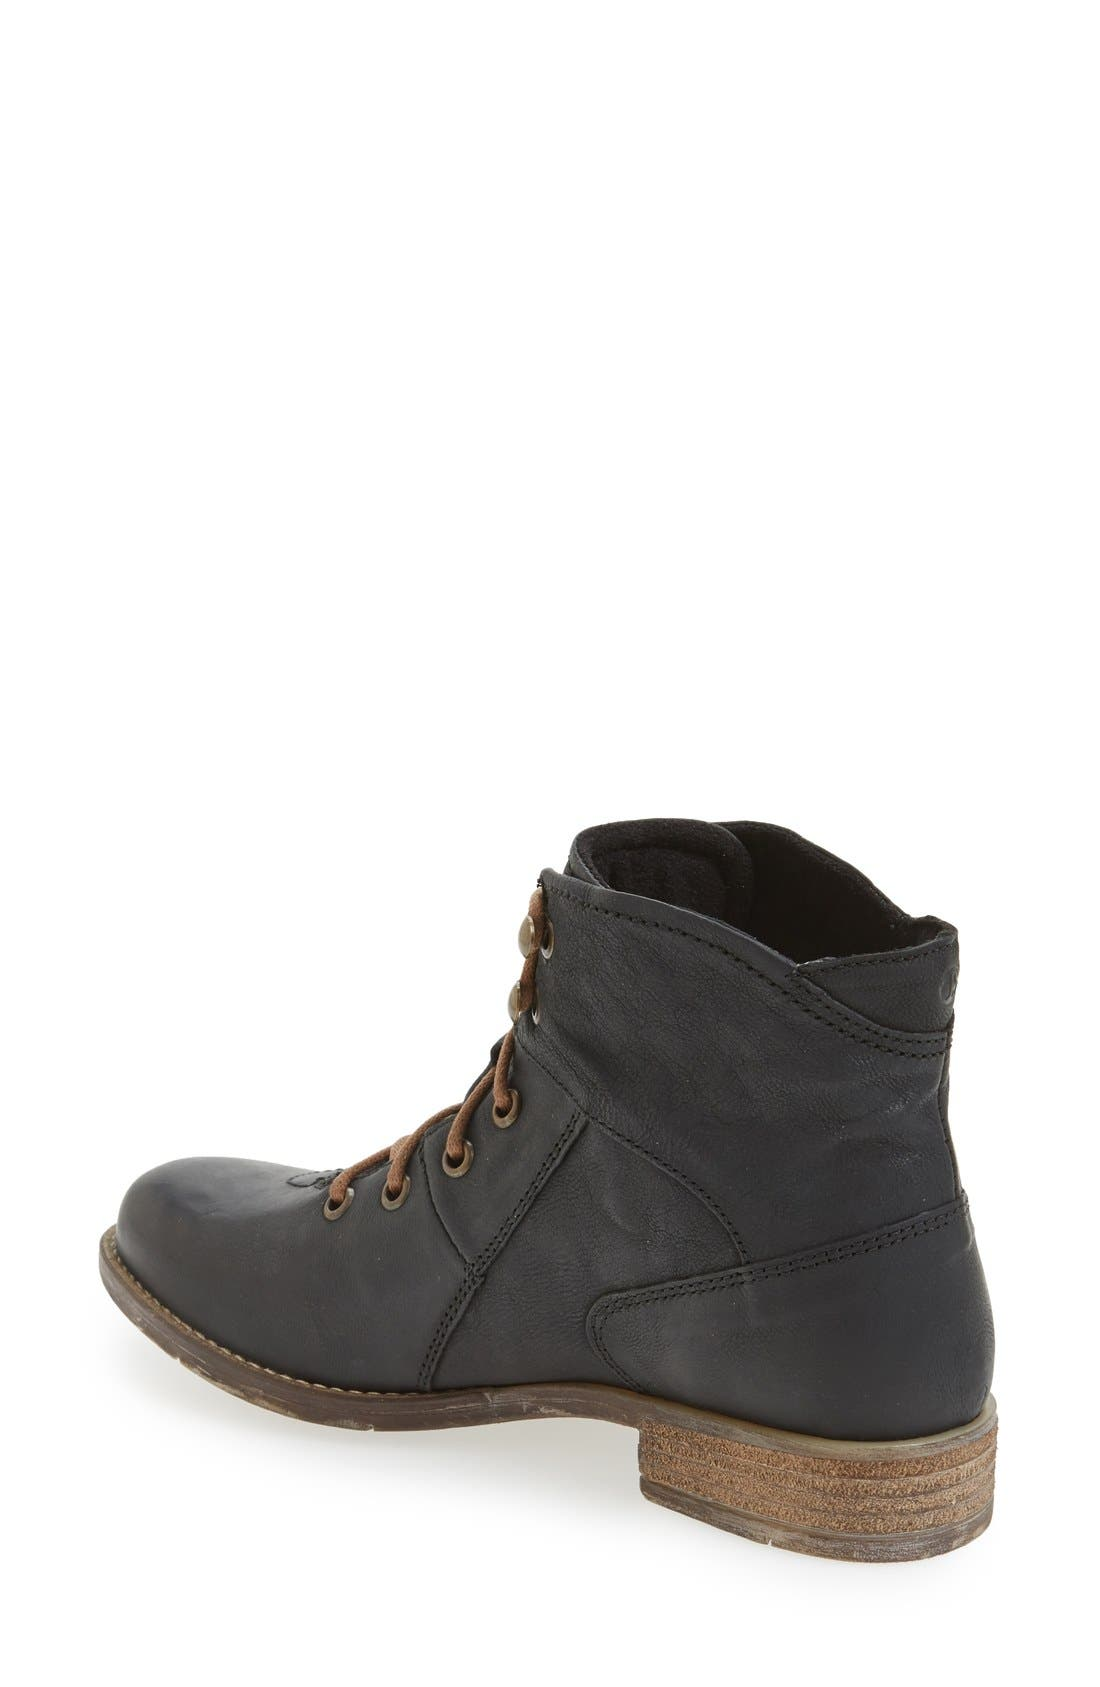 Sienna 11 Boot,                             Alternate thumbnail 4, color,                             008